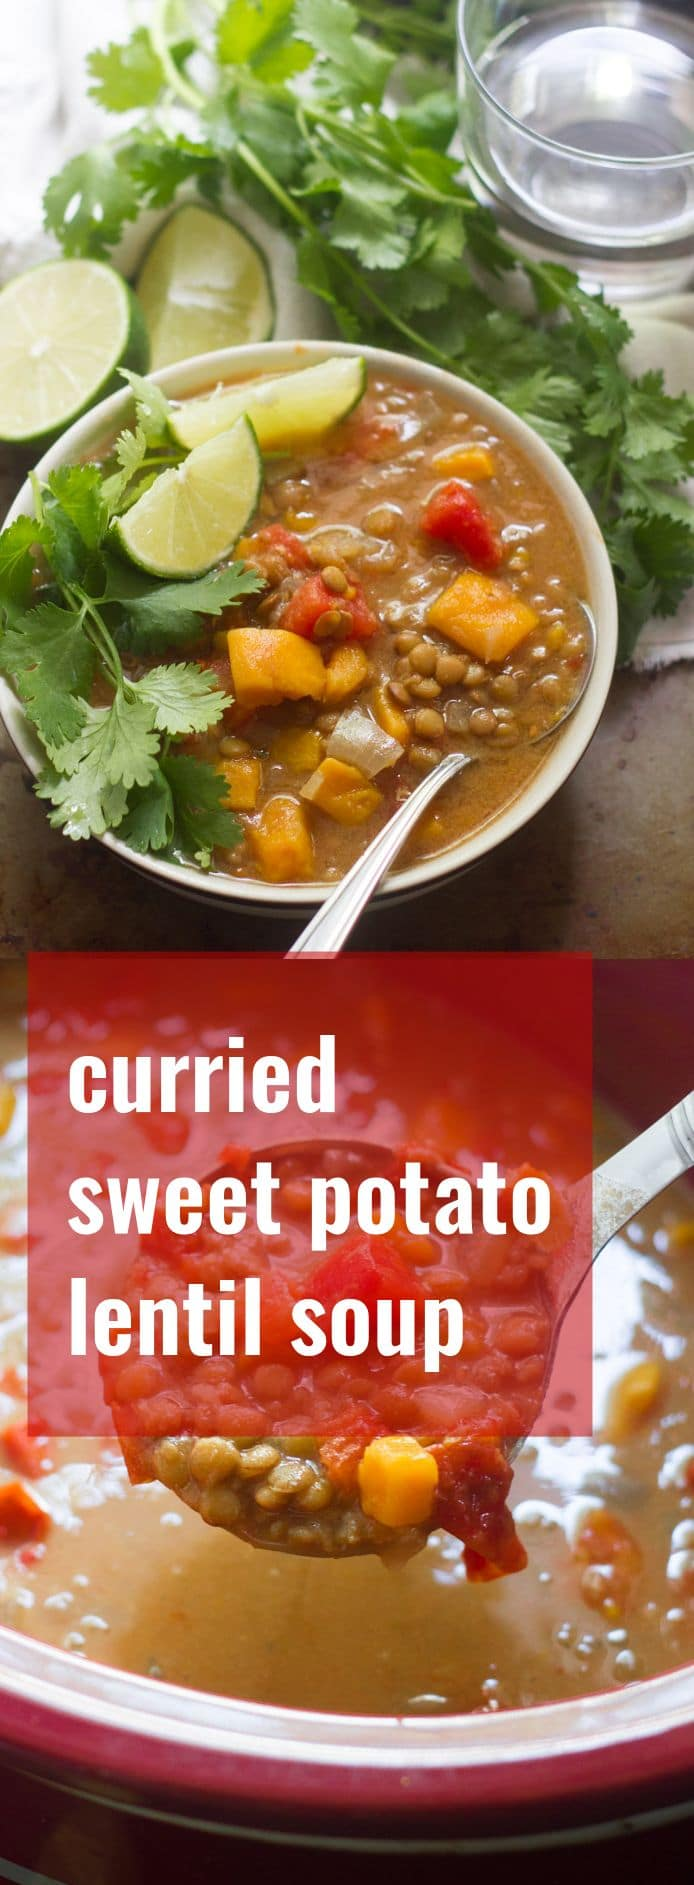 Curried Sweet Potato Lentil Soup